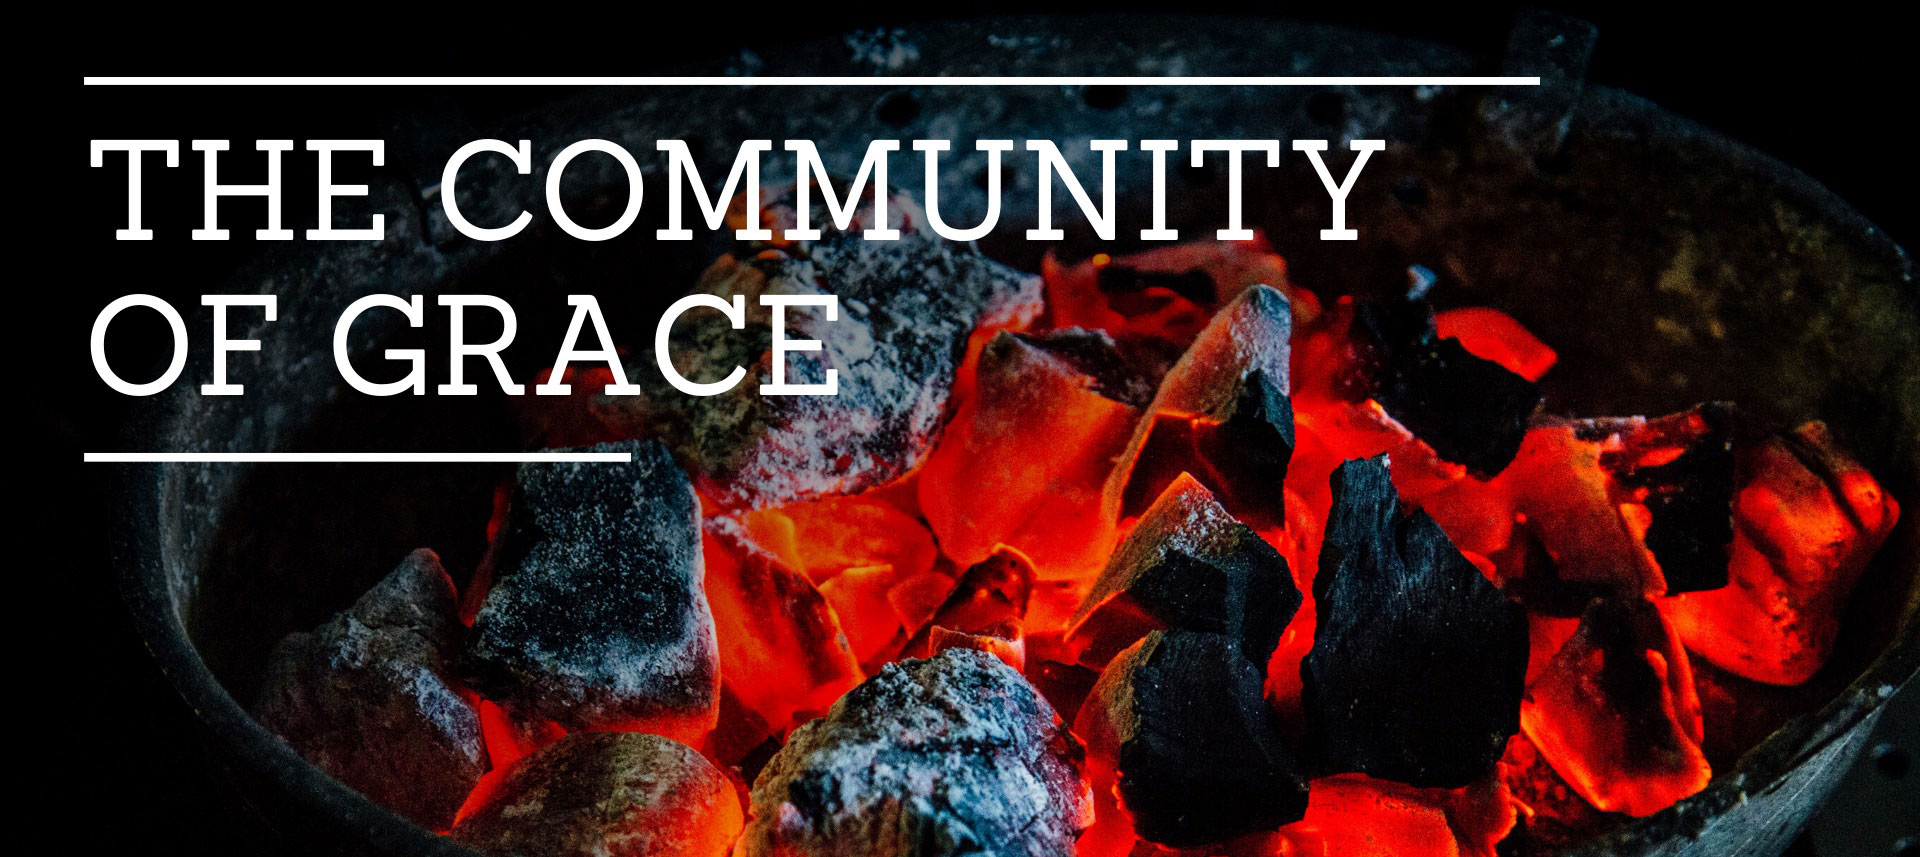 The Community of Grace